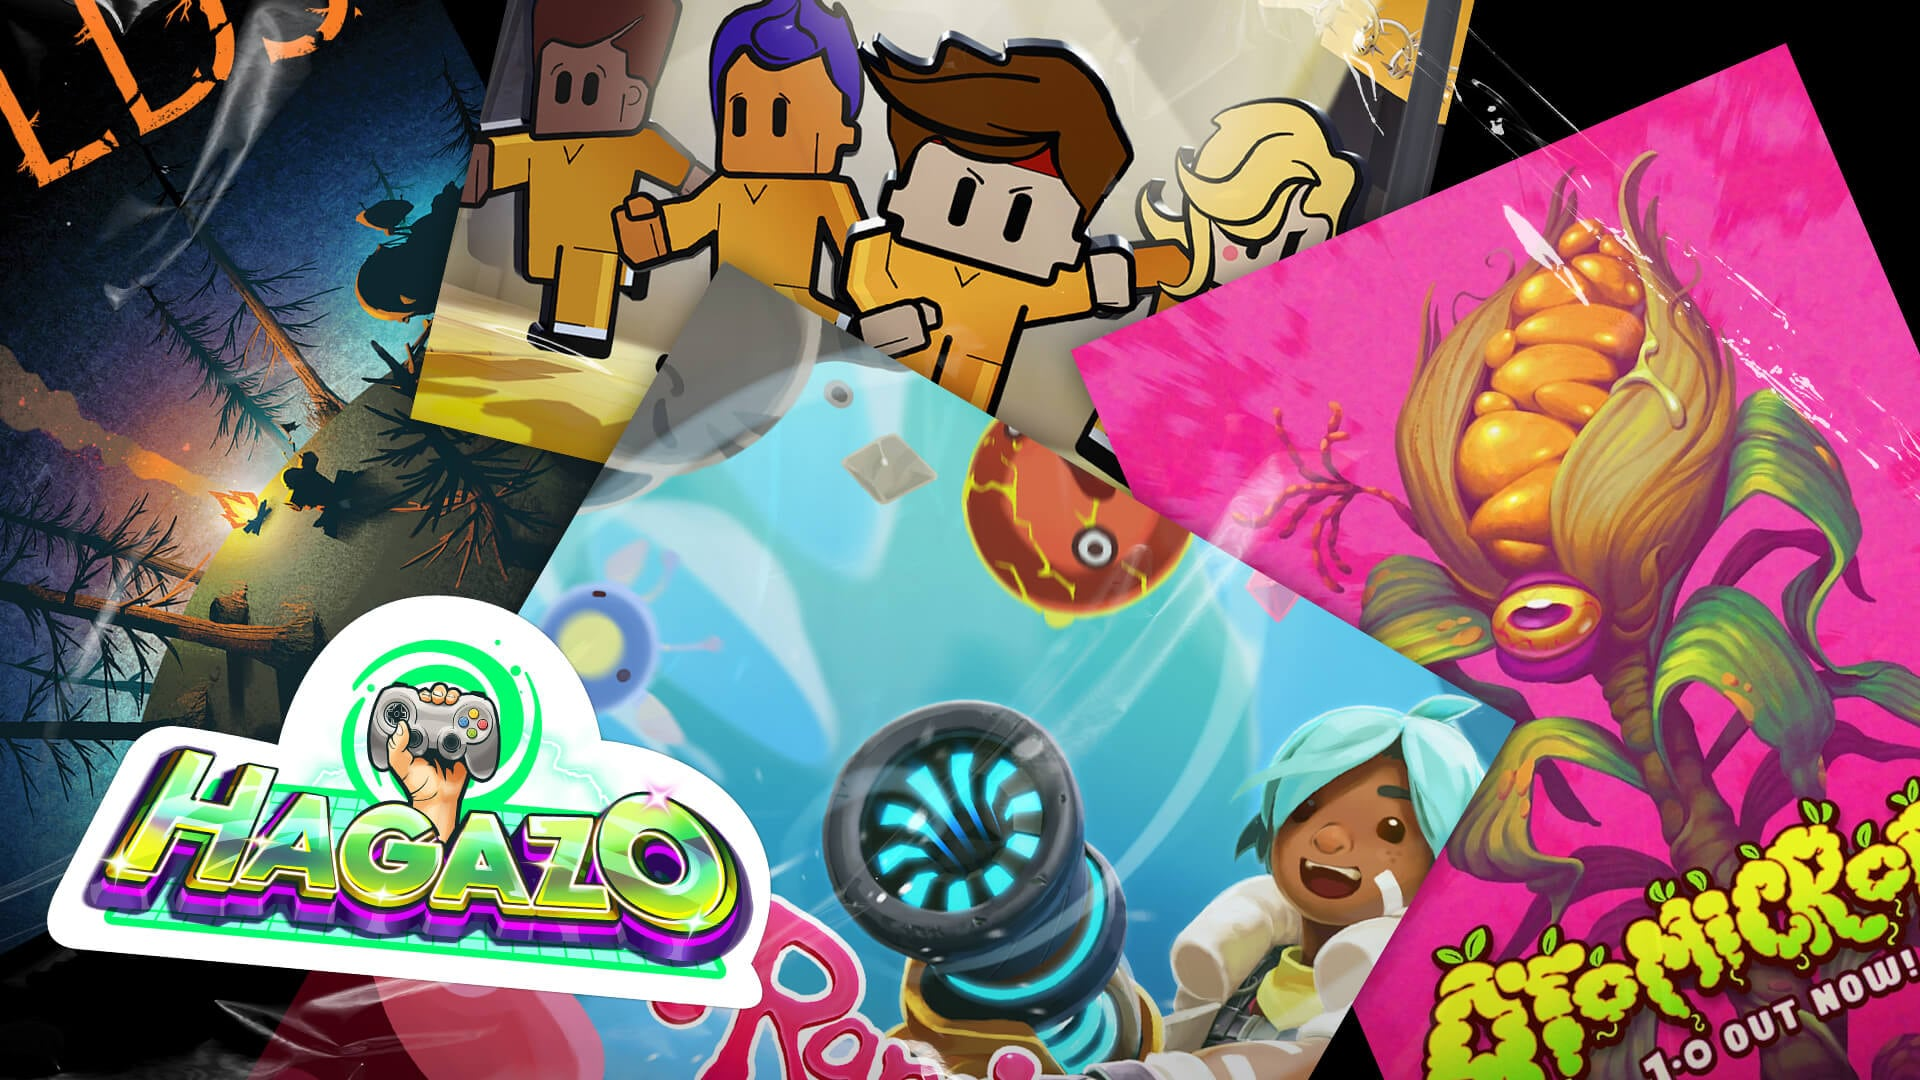 Discover Hagazo's Creators Choice Recommendations on the Epic Games Store